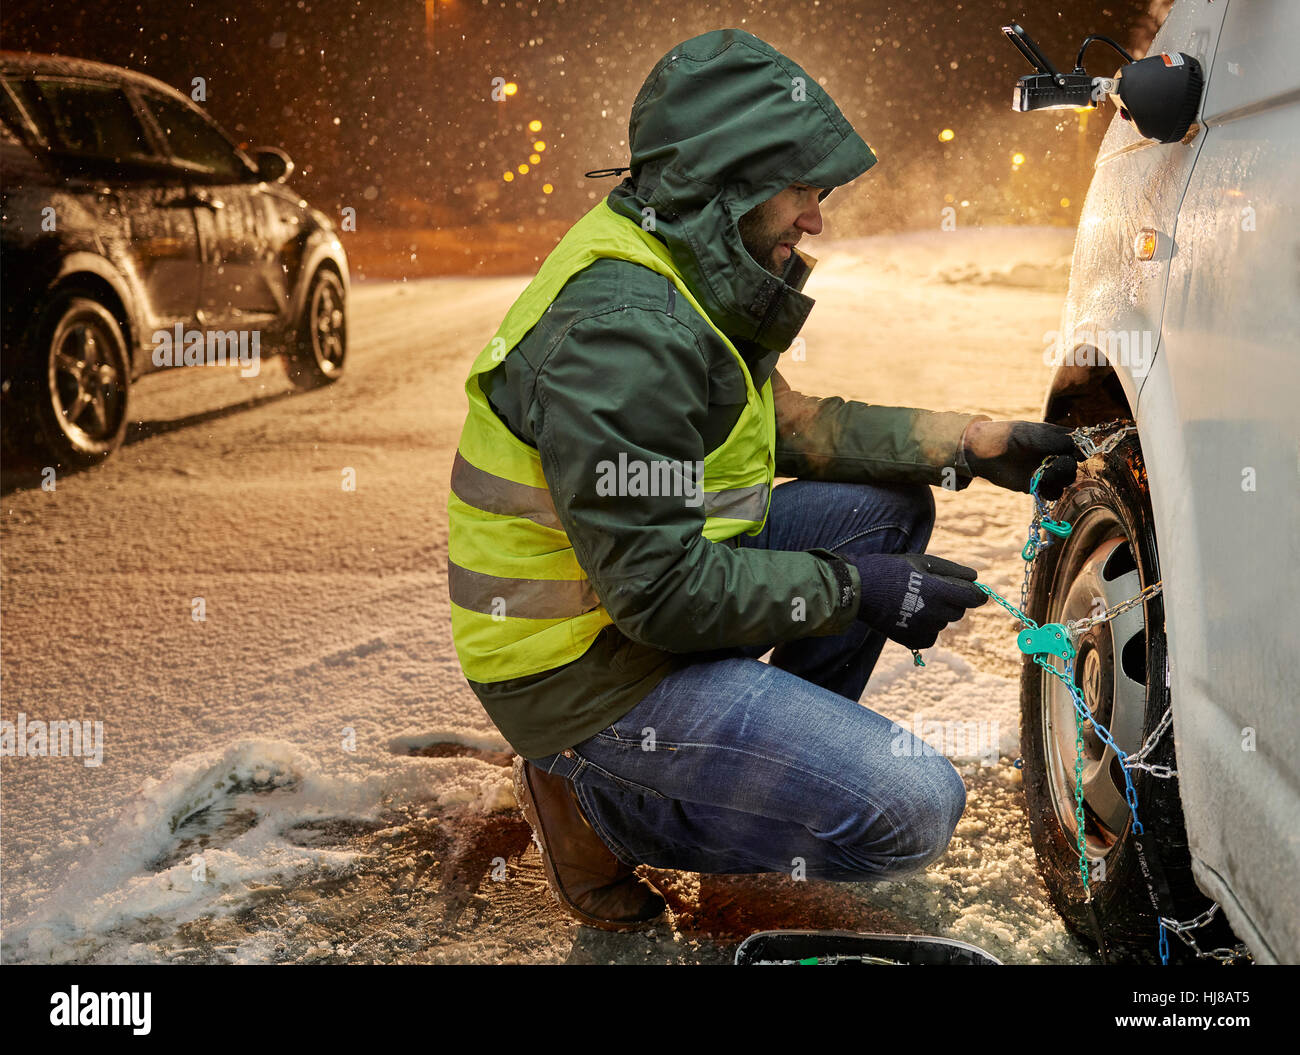 Man with safety vest applying snow chains on snow-covered road, Wattens, Tyrol, Austria Stock Photo